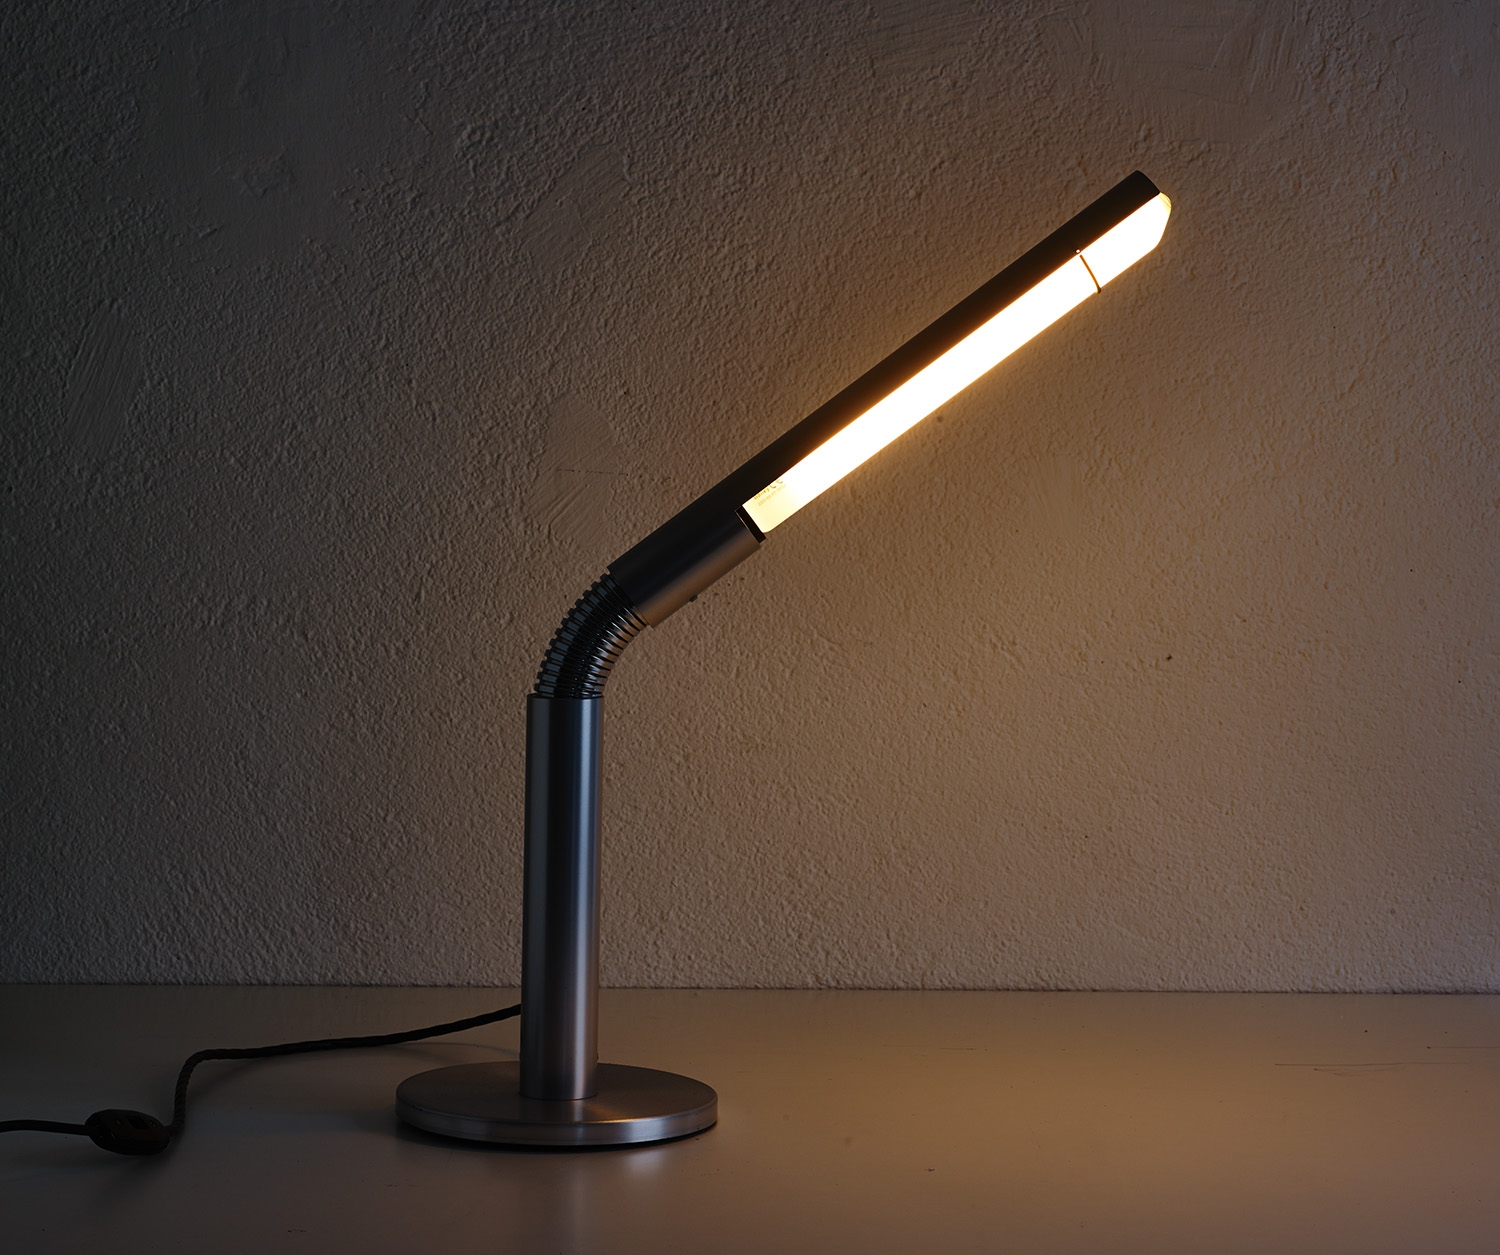 lampe-table-s1-baltensweiler-image-07